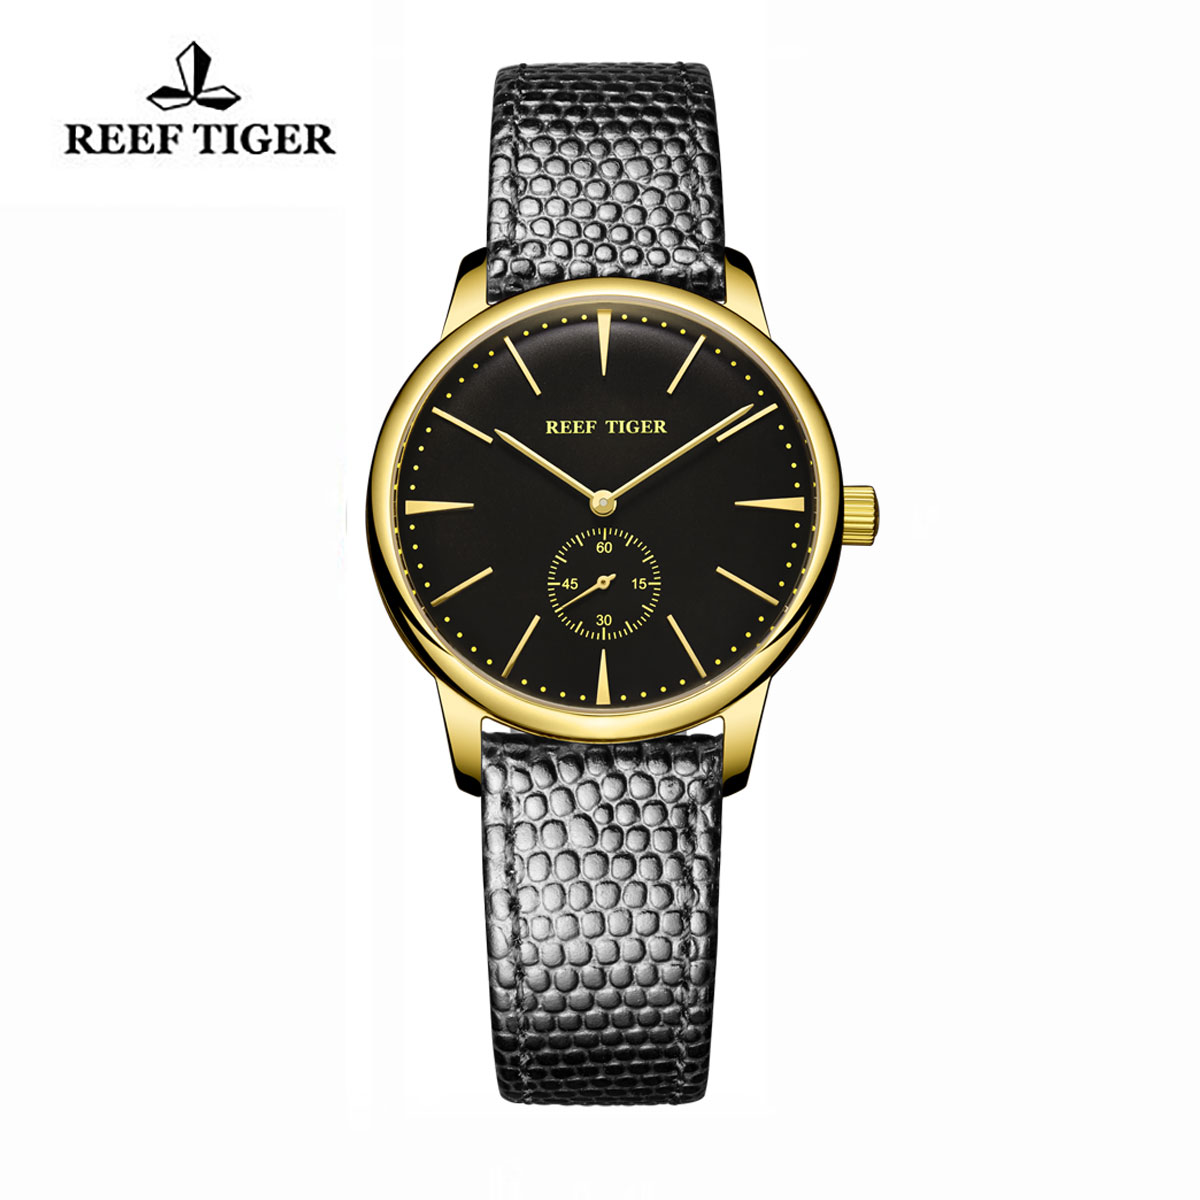 Reef Tiger Vintage Watch Black Dial Yellow Gold Calfskin Leather RGA820-GBB-L